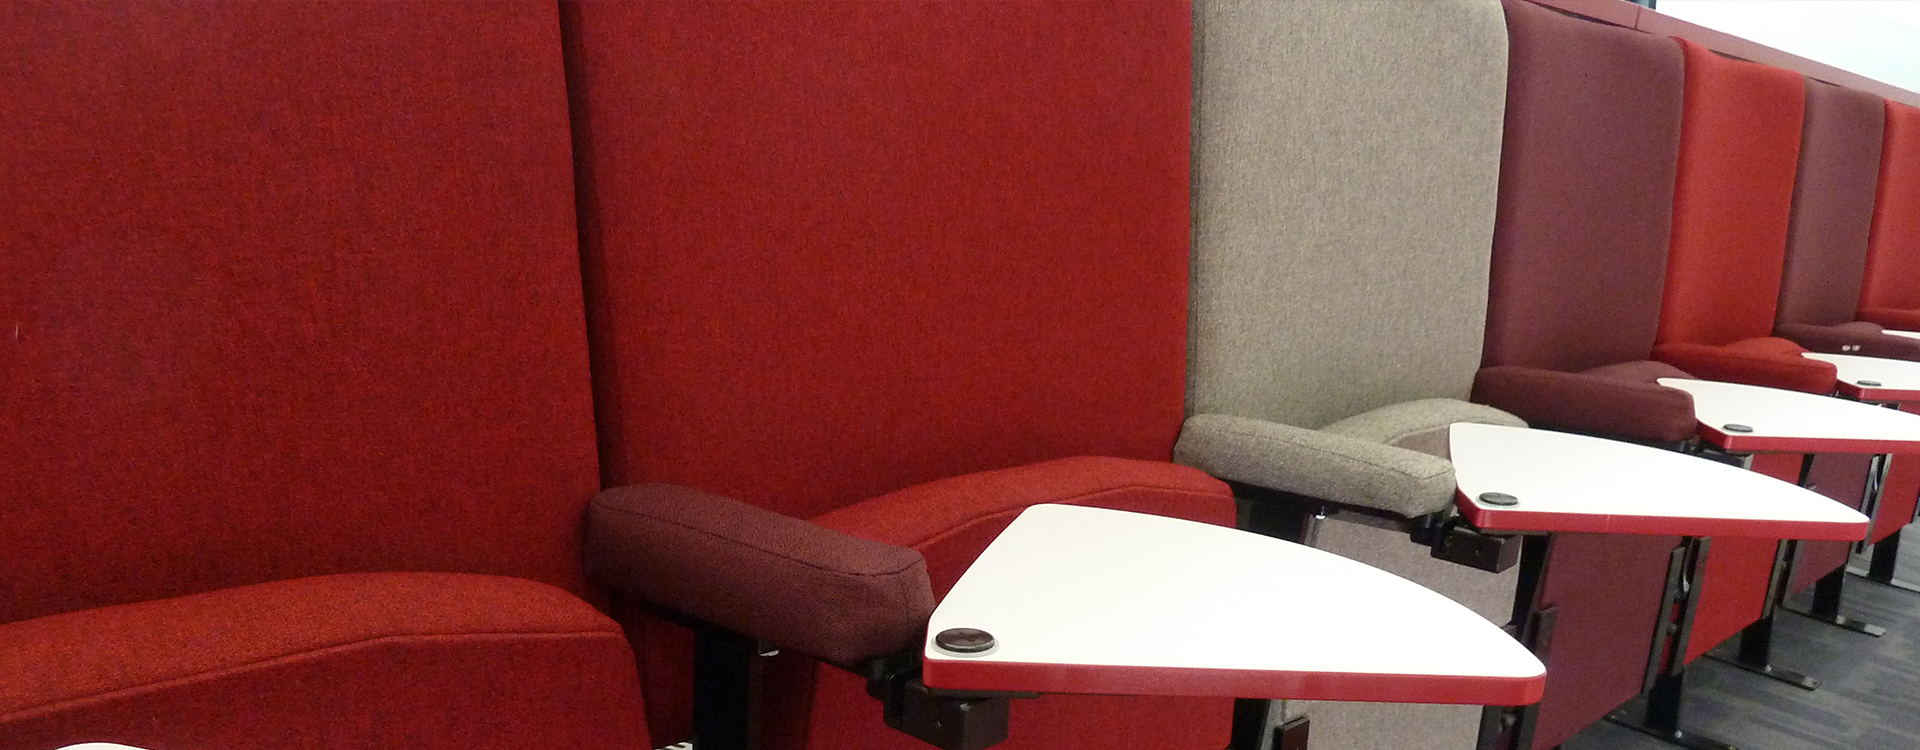 Aston University Lecture Theatre Seating